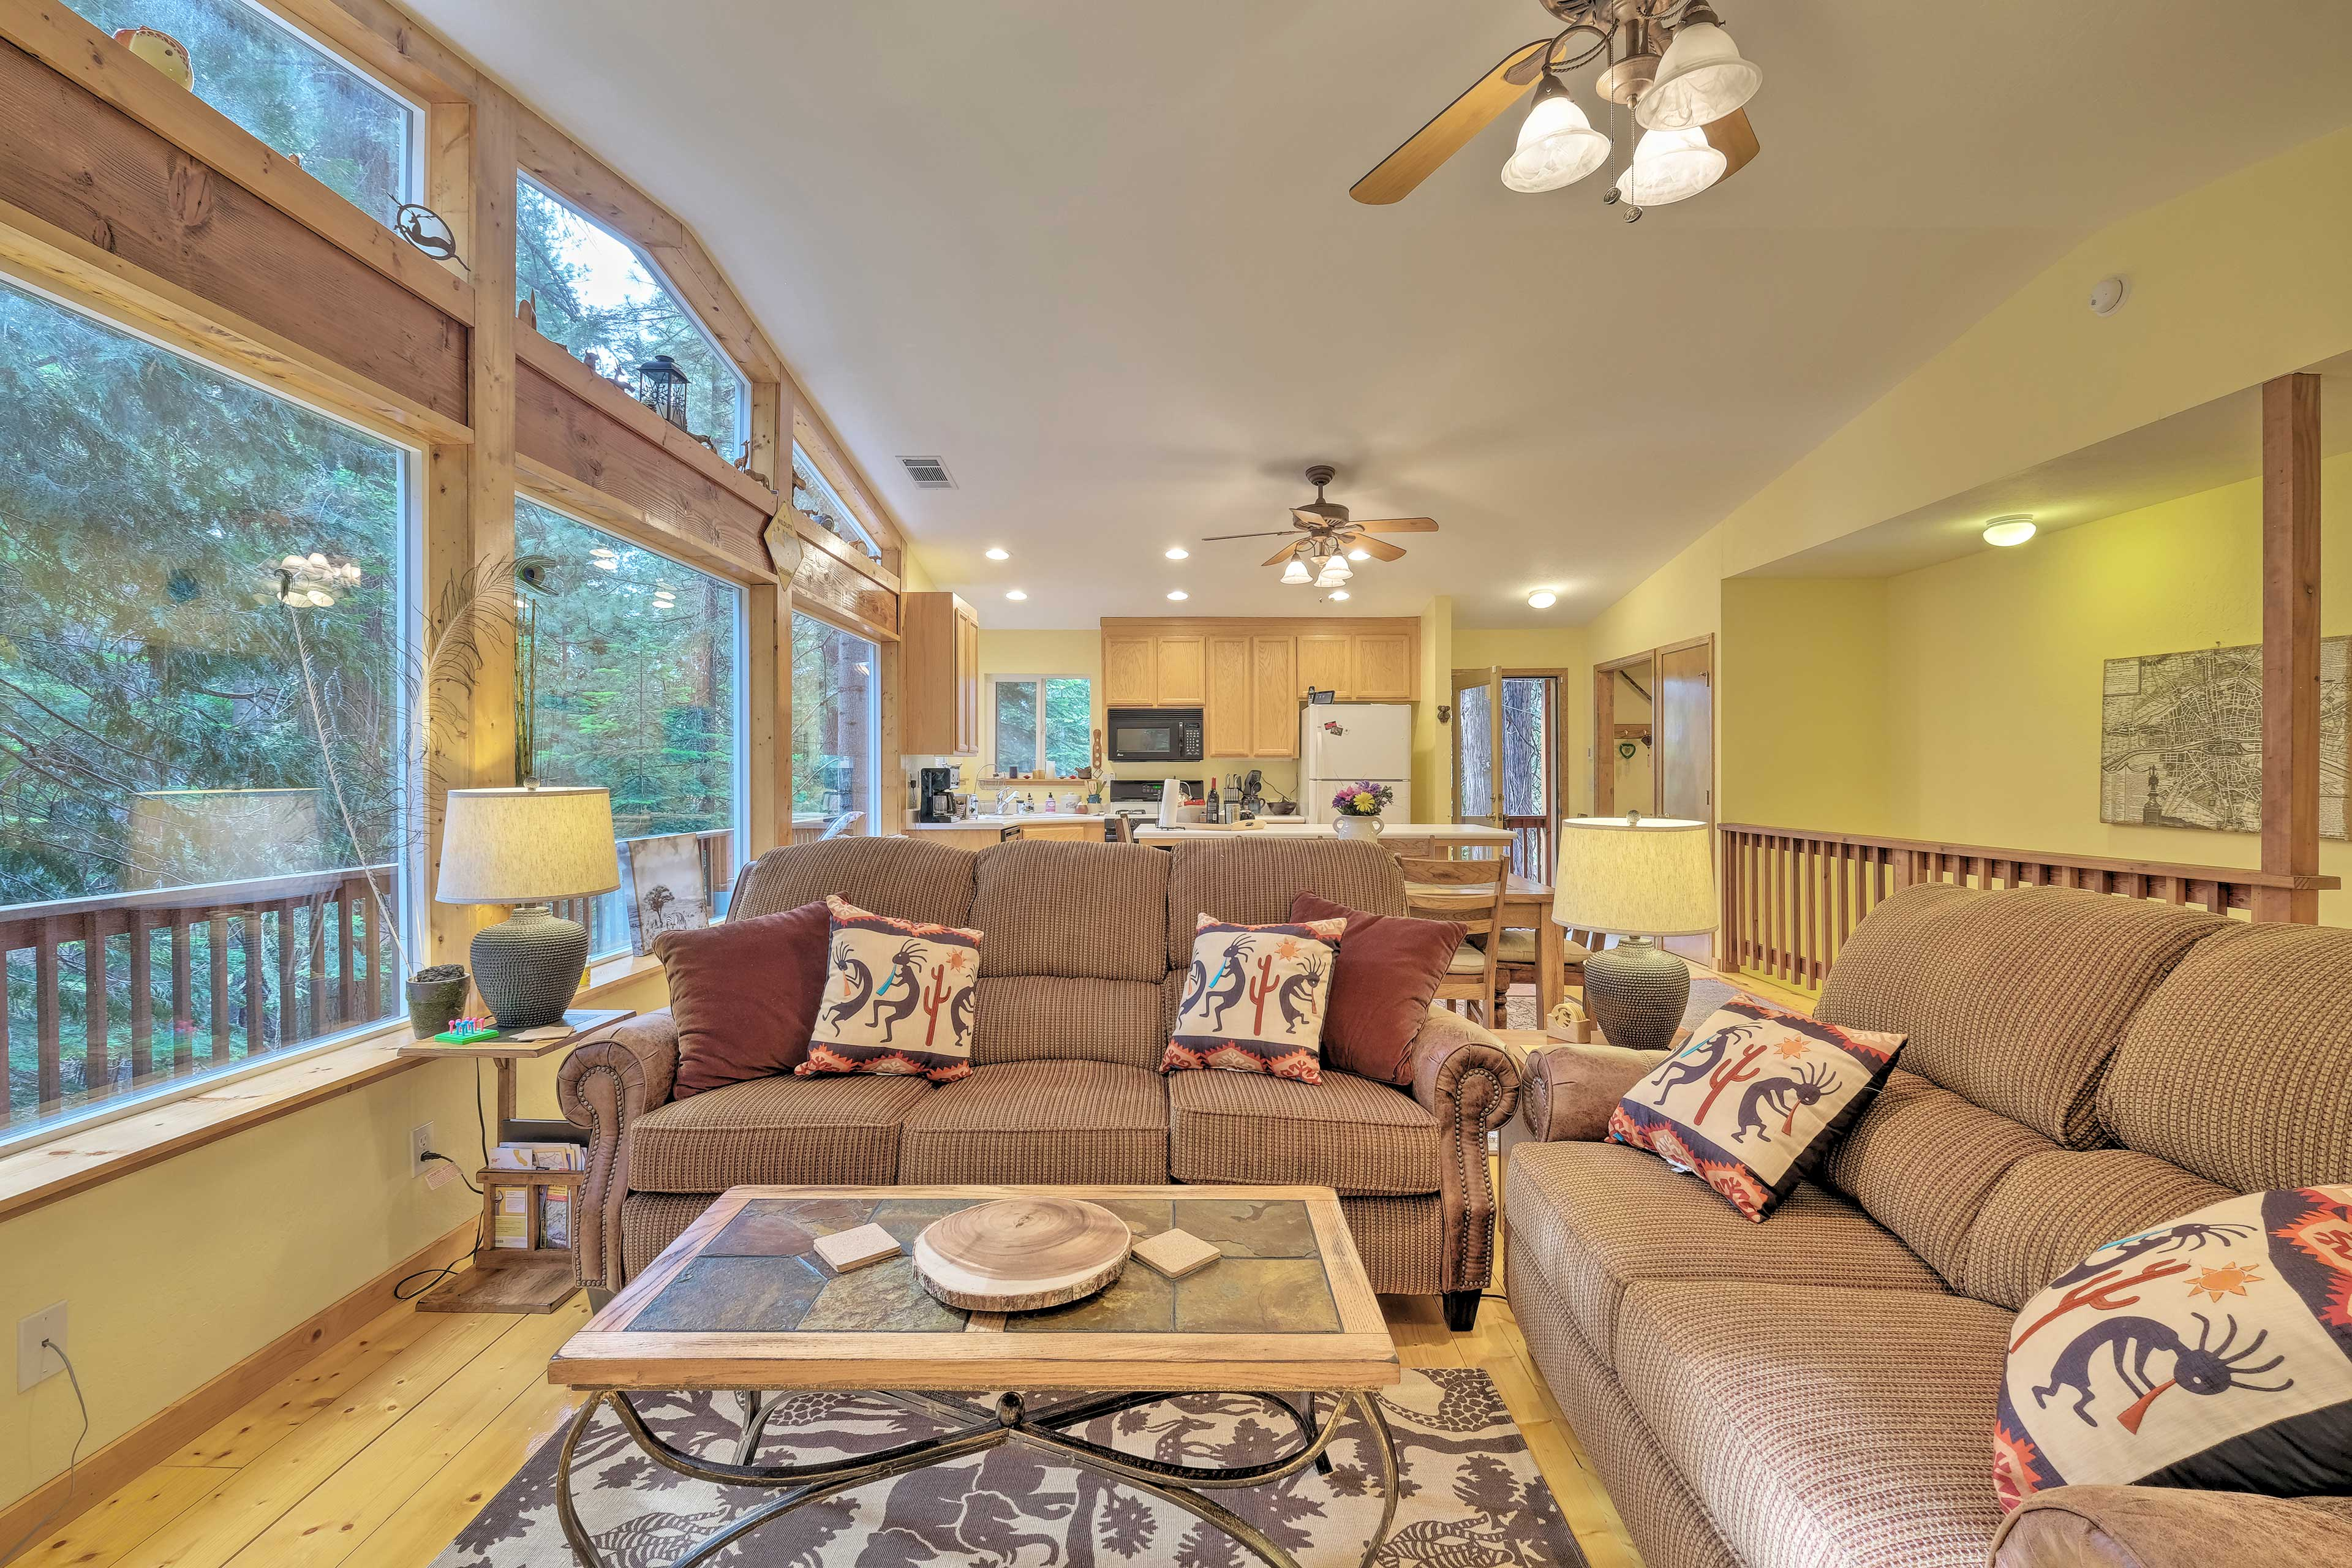 The home features 2 living spaces detailed in rustic decor.